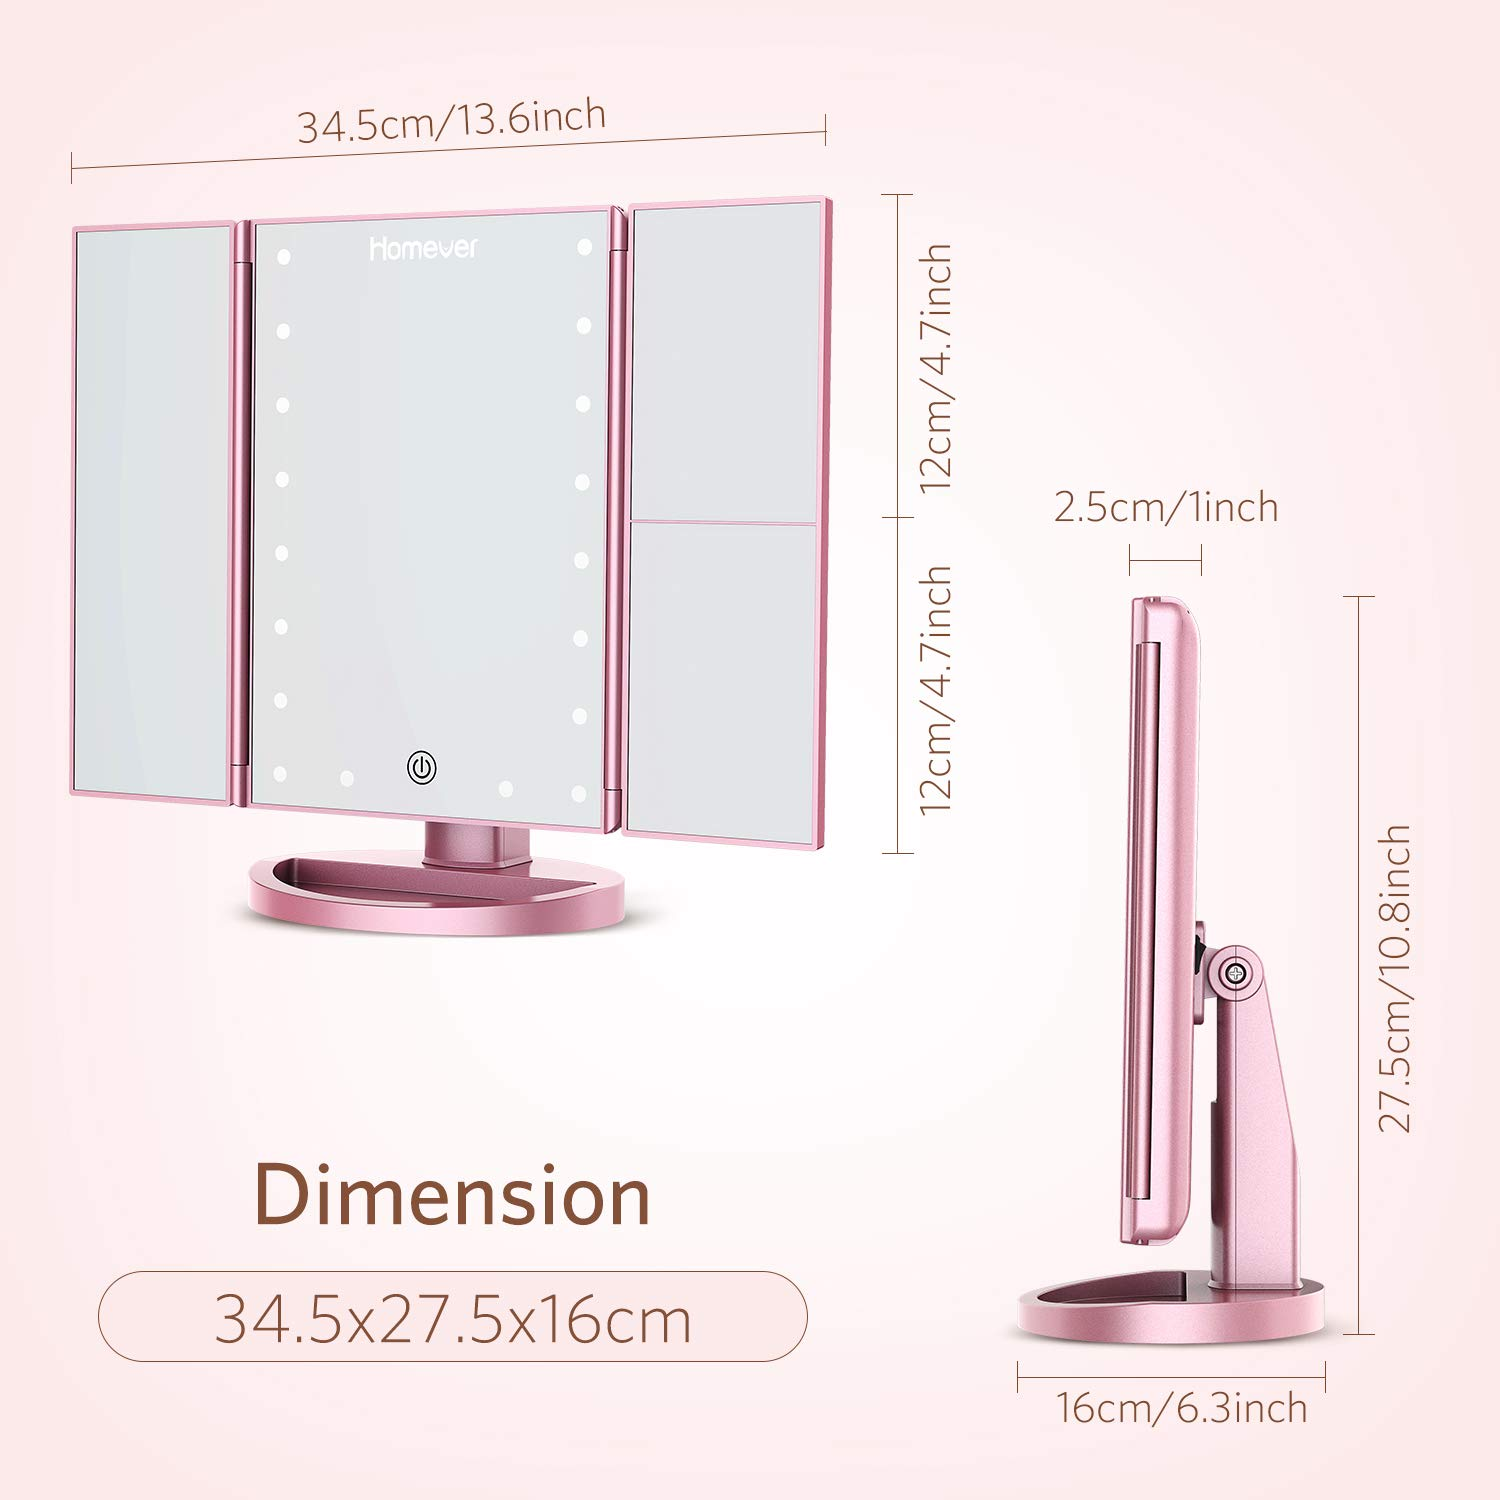 Homever Makeup Vanity Mirror with 21 LED Lights, 3X/2X Magnifying Lighted Makeup Mirror with Touch-Screen, 180° Free Rotation, Dual Power Supply, Upgrade in 2018 (Rose gold) by Homever (Image #5)